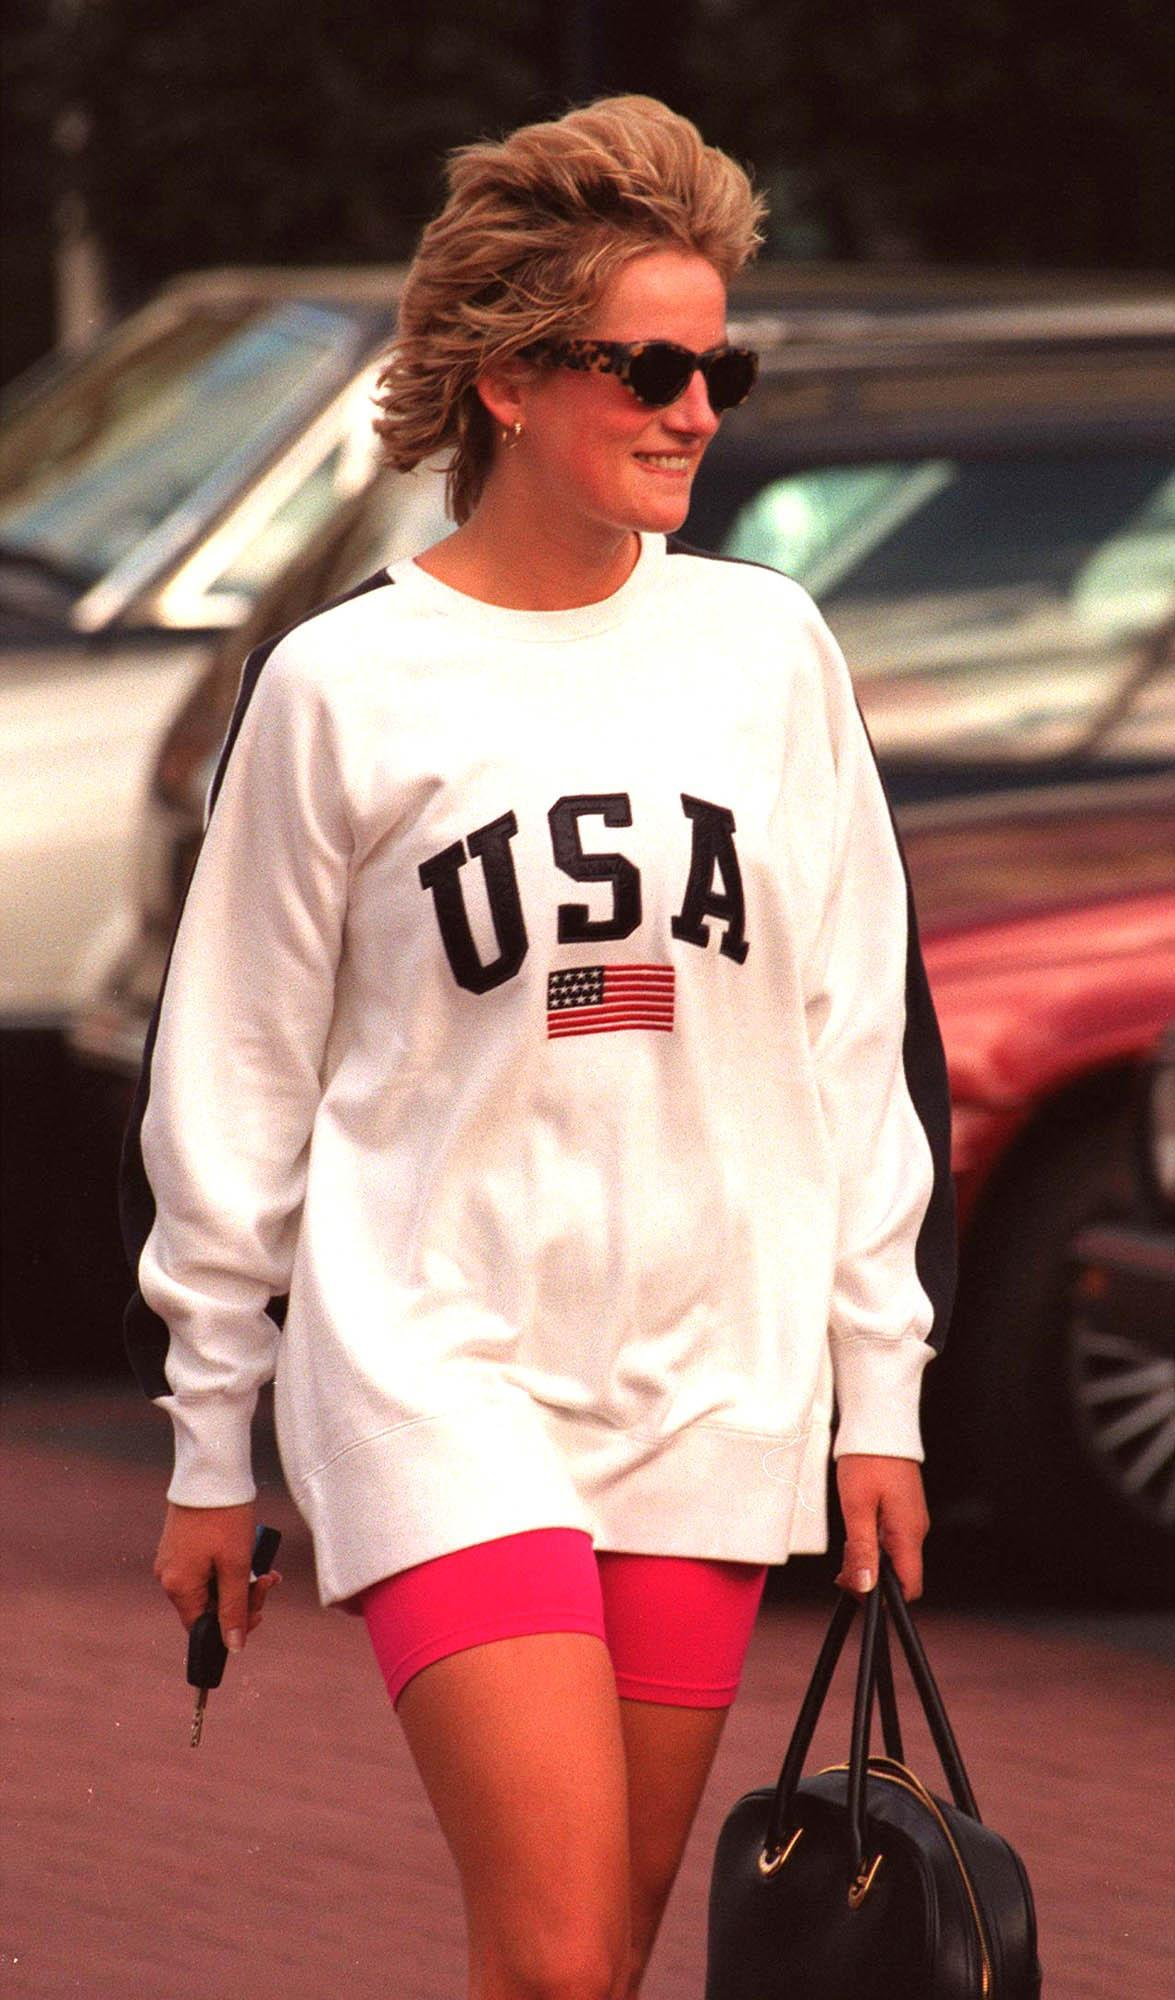 The late Princess of Wales wore the 'USA' sweatshirt at Chelsea Harbour Club in 1997. (Getty Images)